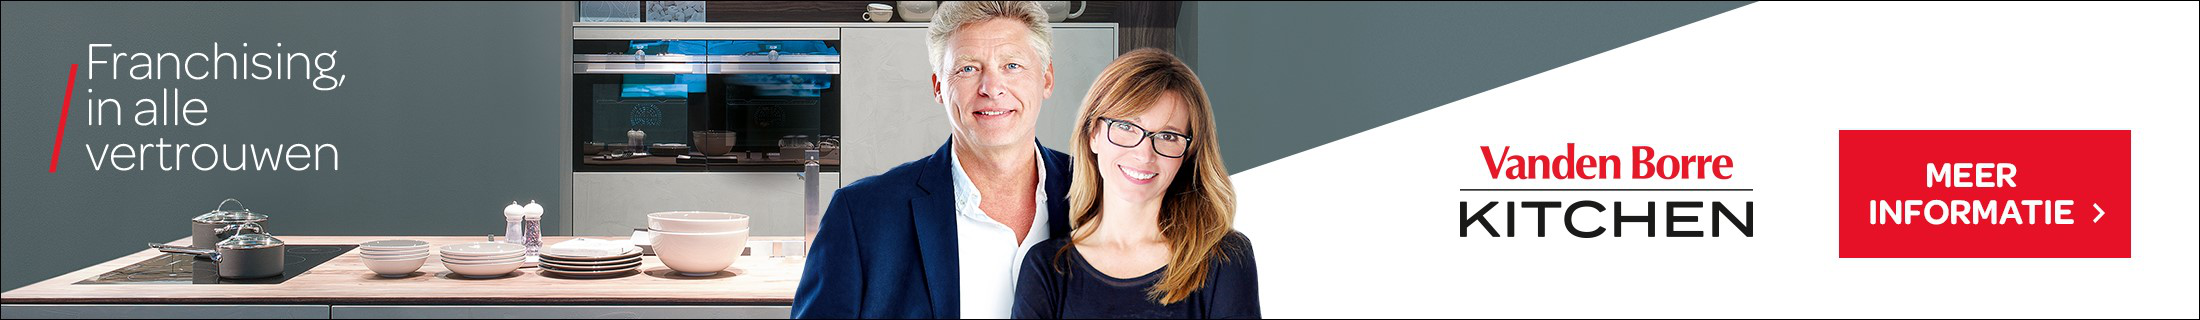 Vandenborre kitchen rekruteert franchisenemers in Vlaanderen